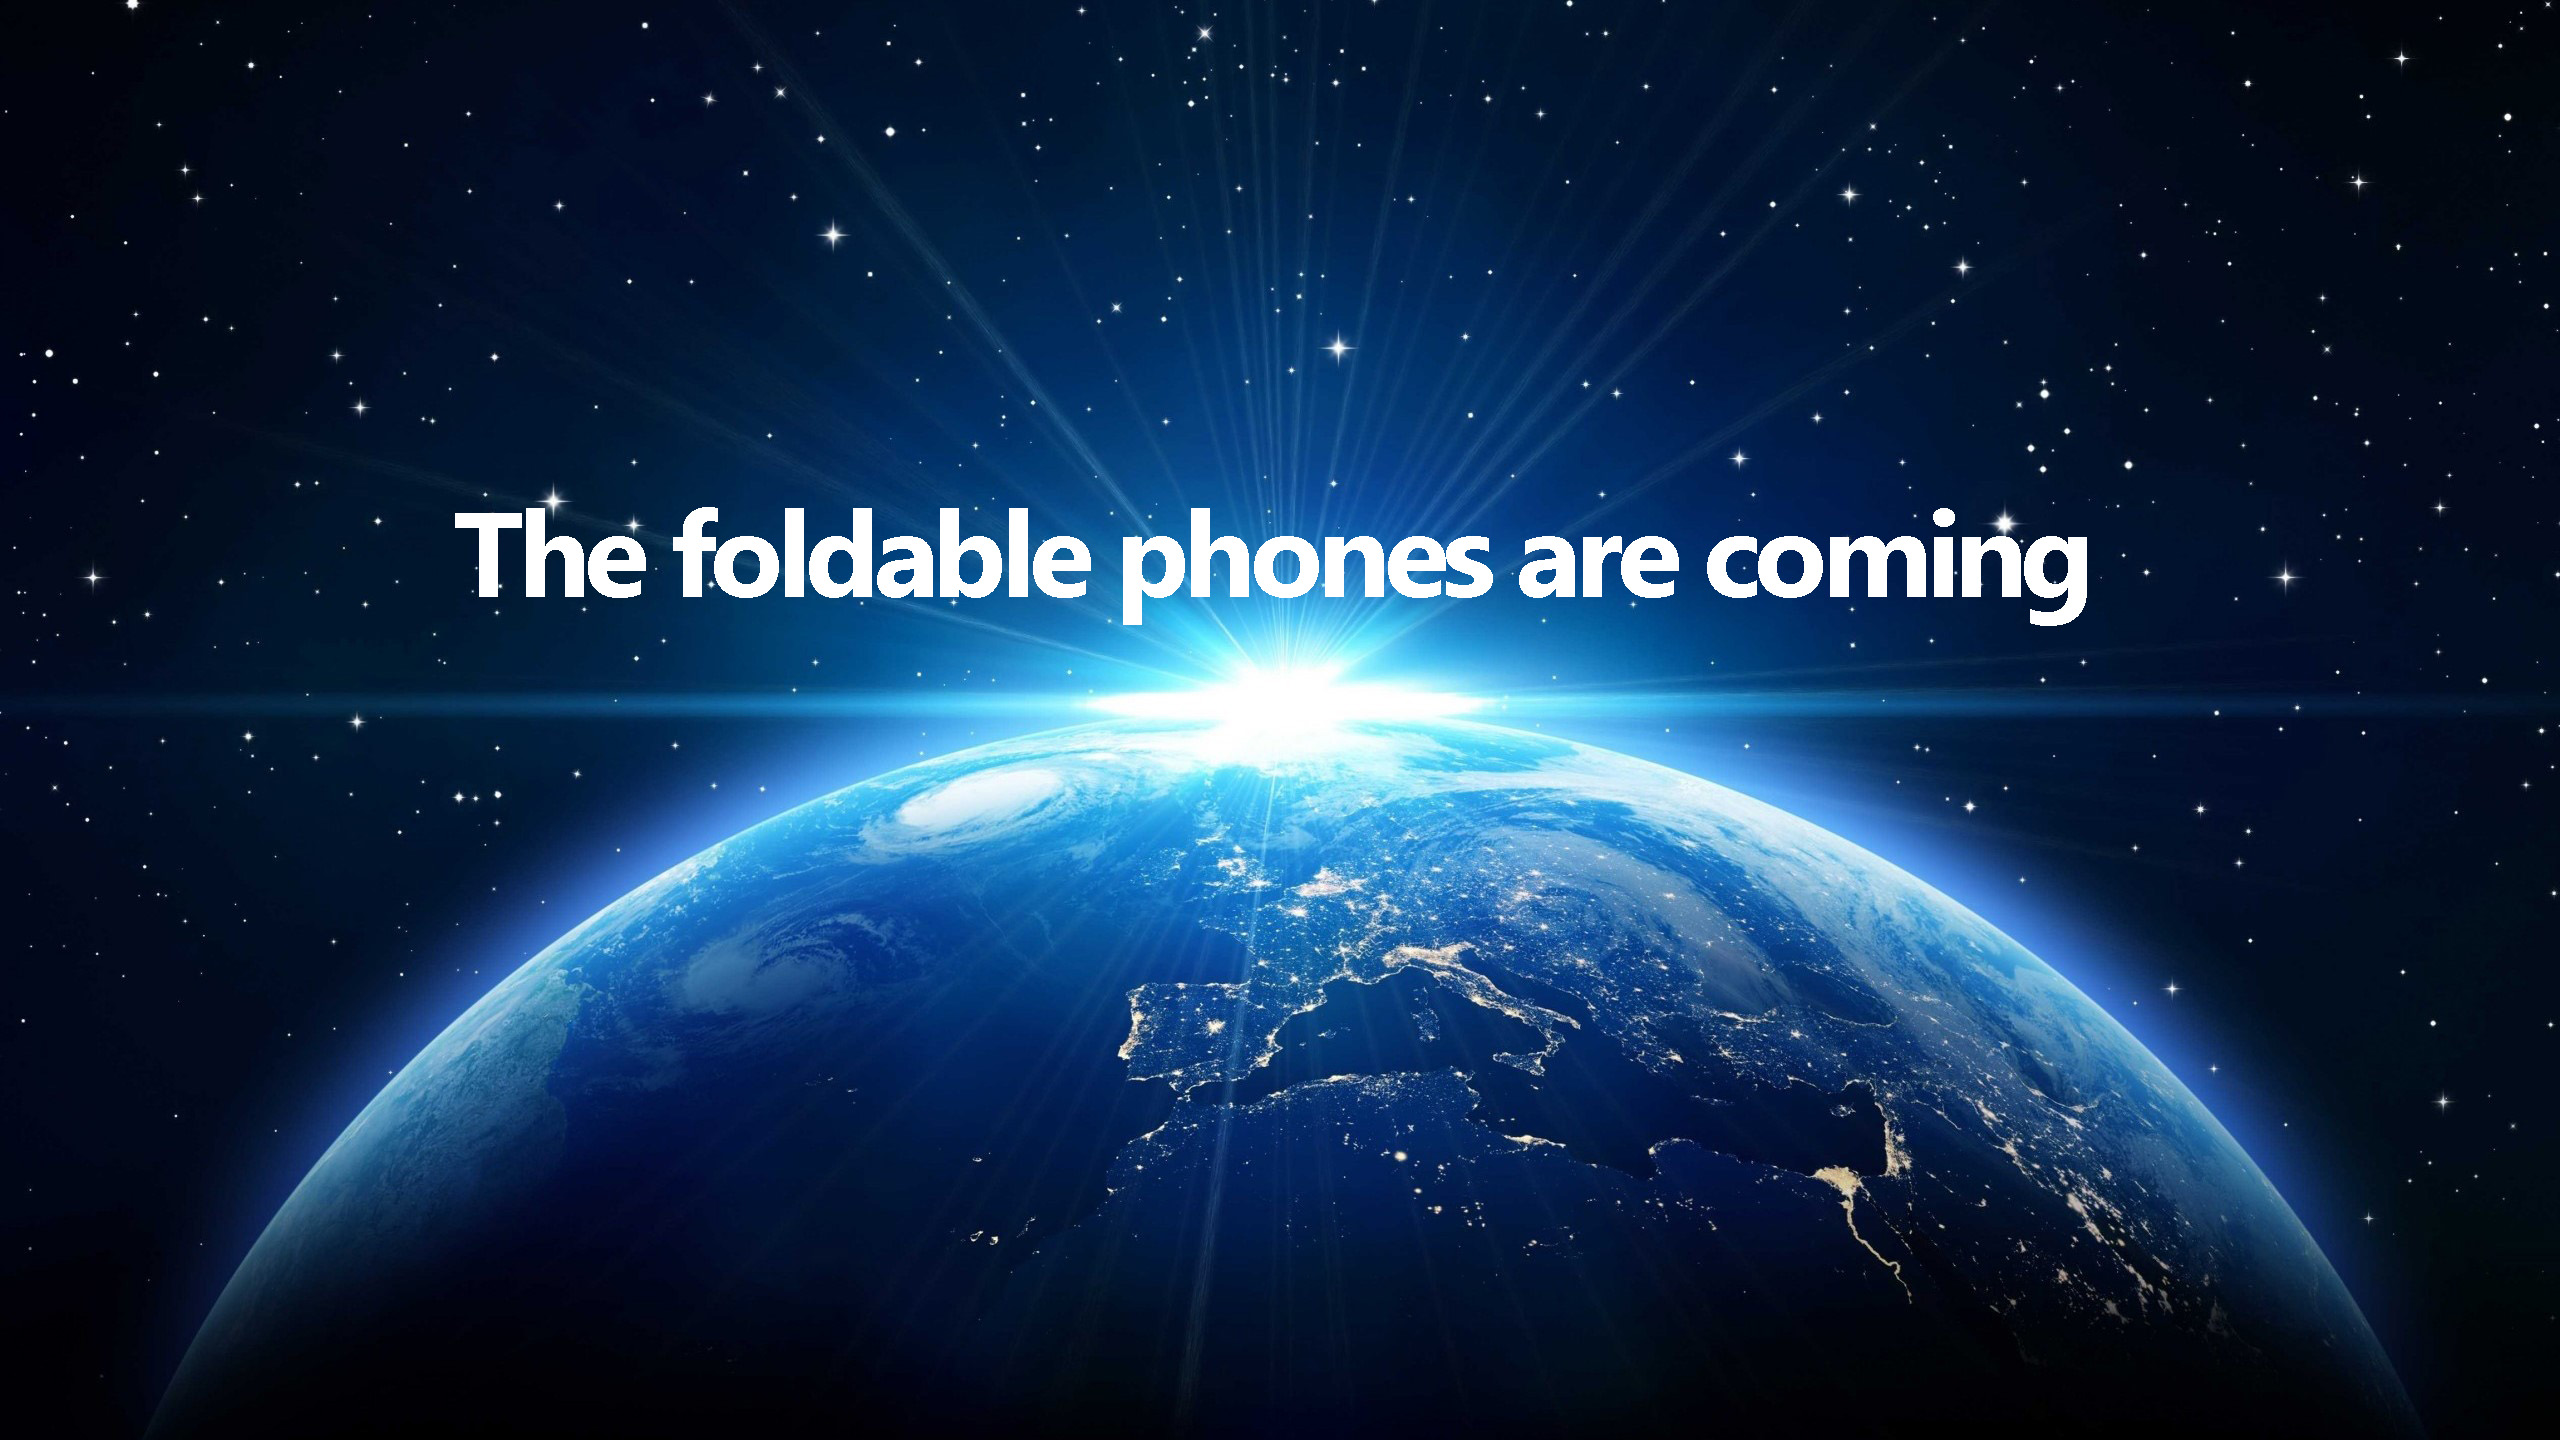 Foldable-Phone-Shop-7-Copy News